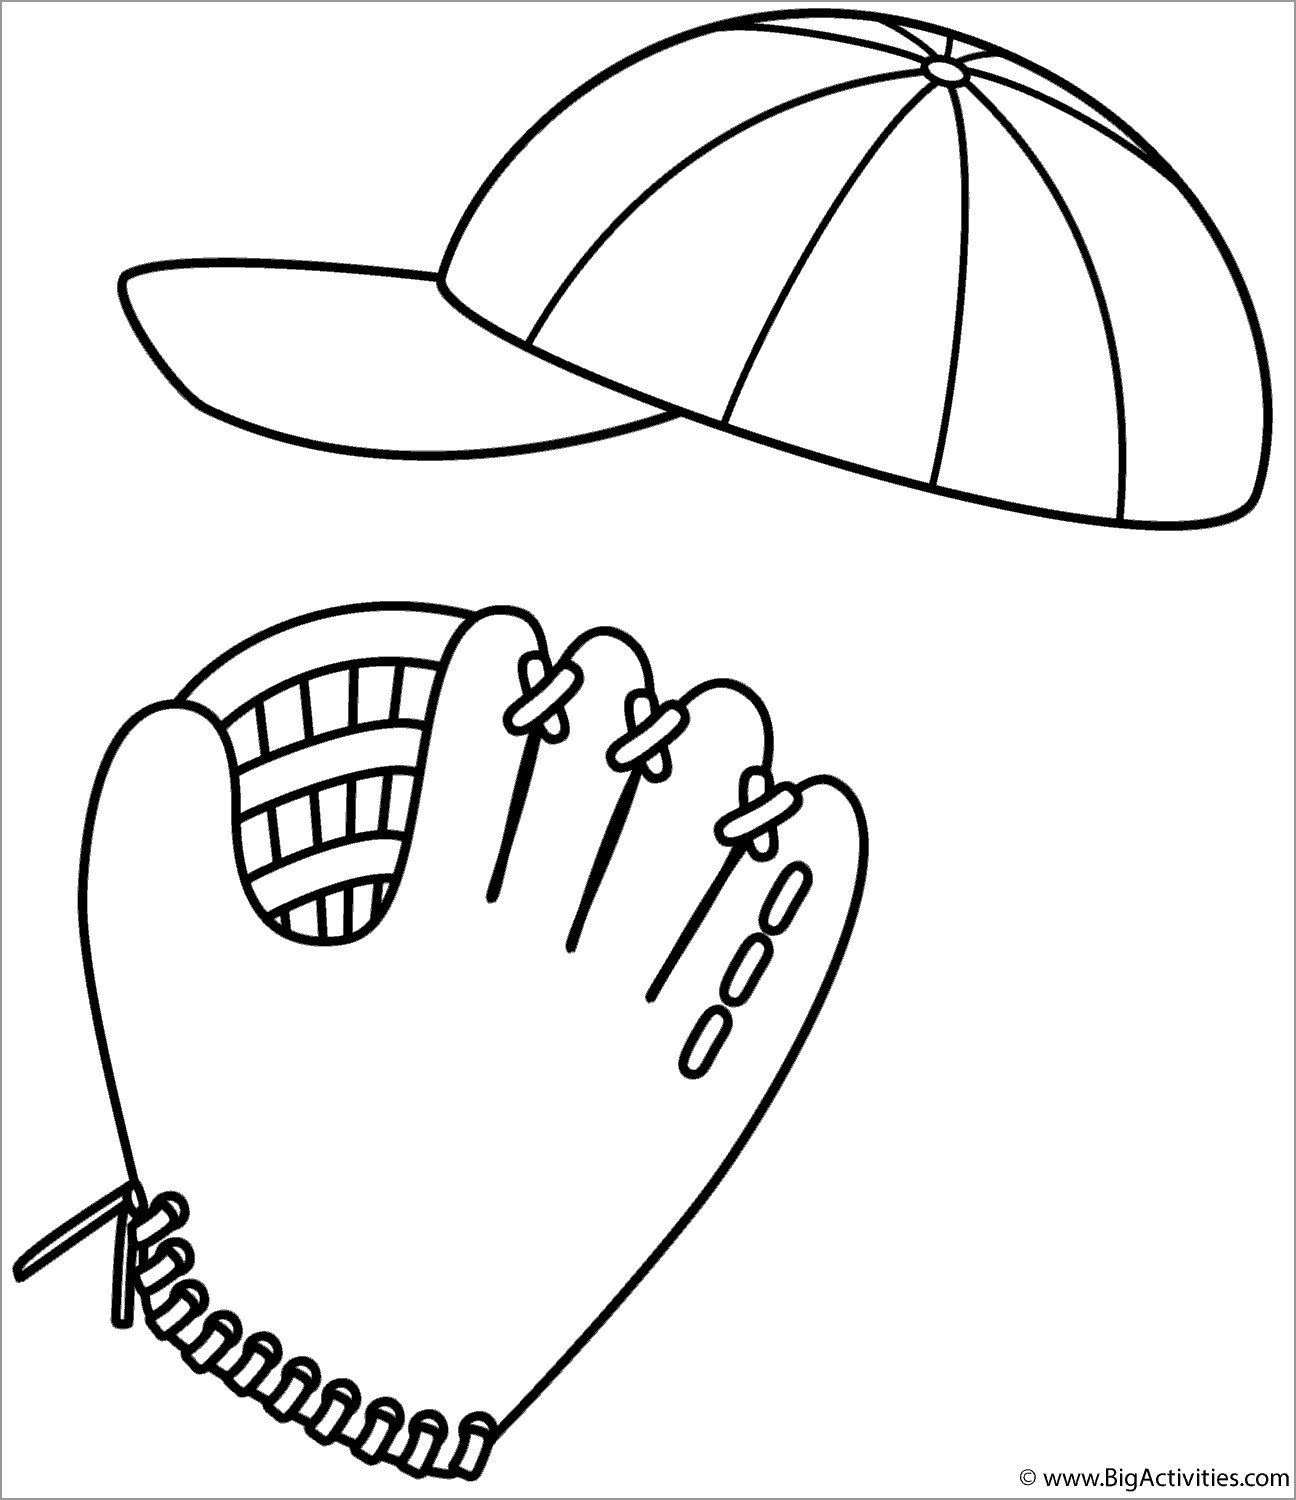 Baseball Cap and Glove Coloring Page